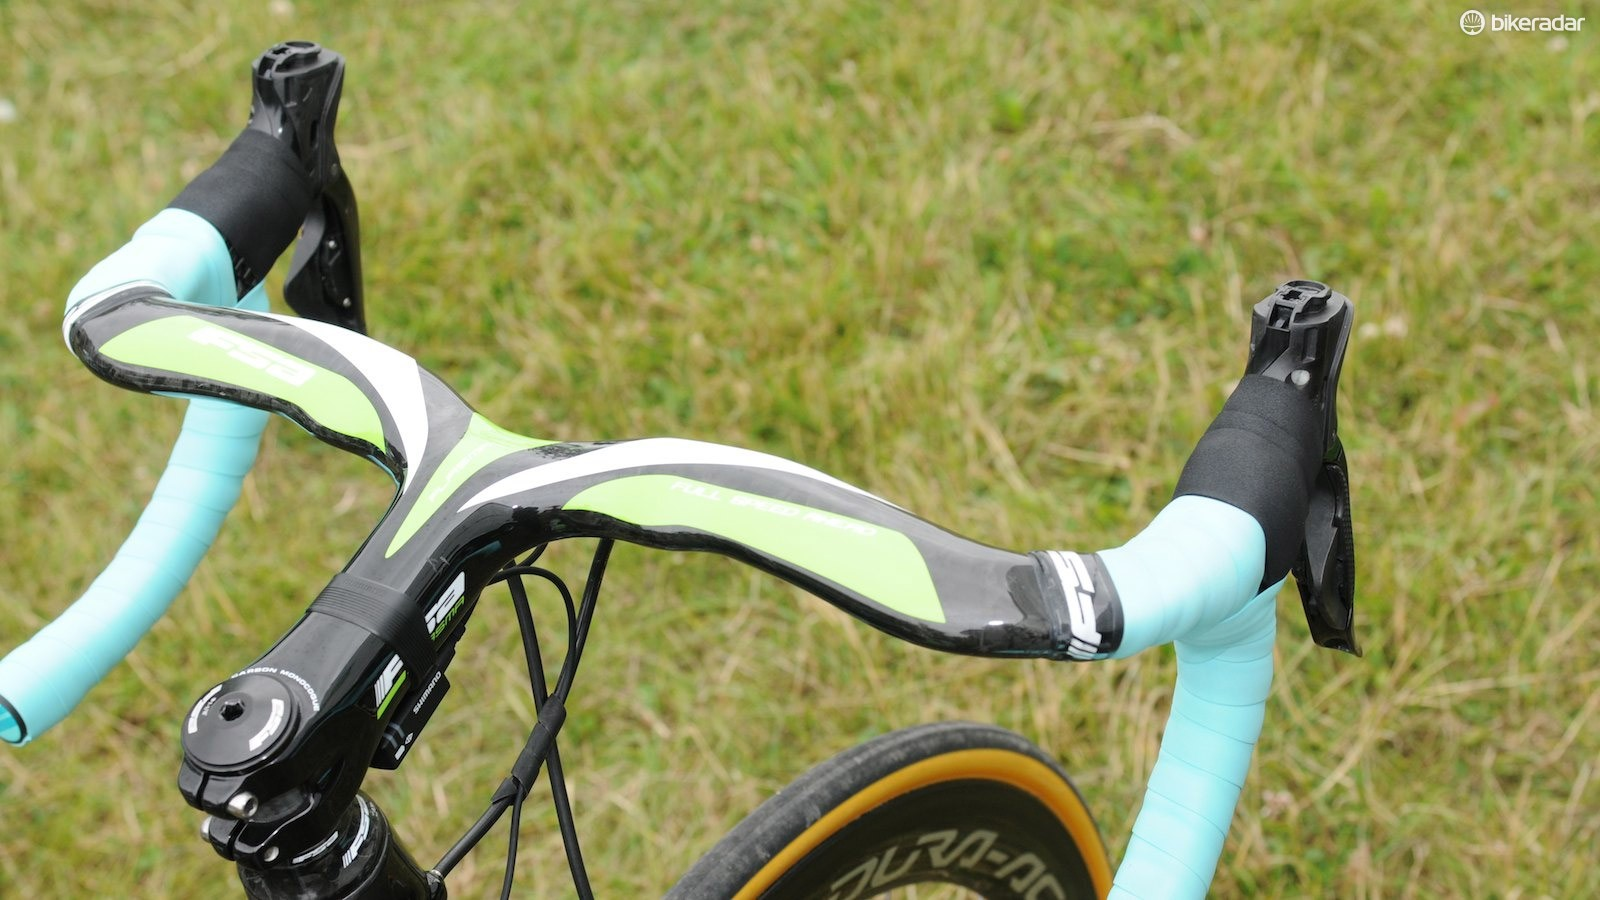 Bauke Mollema of Team Belkin chooses to forego the rubber hoods on his Shimano Di2 levers